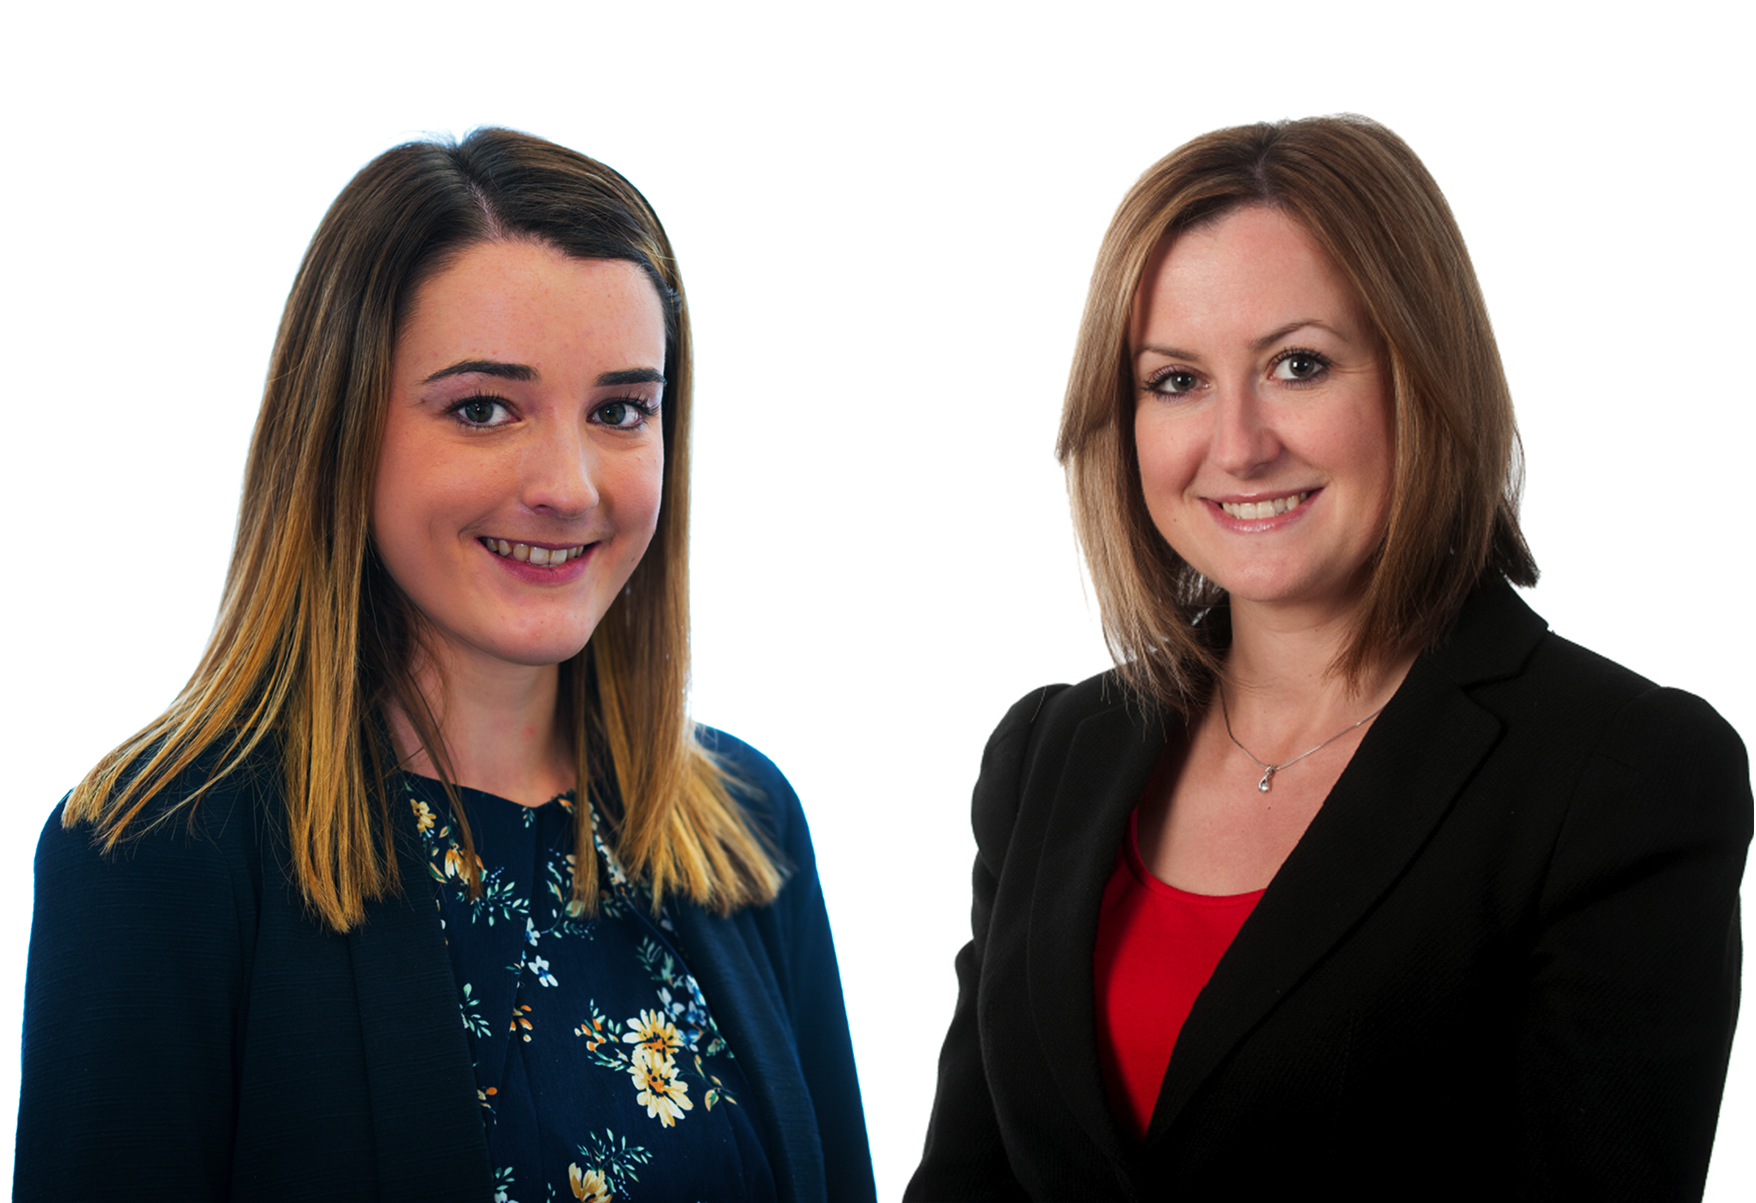 Amy Worthington and Amanda Long celebrate success at Birchall Blackburn Law